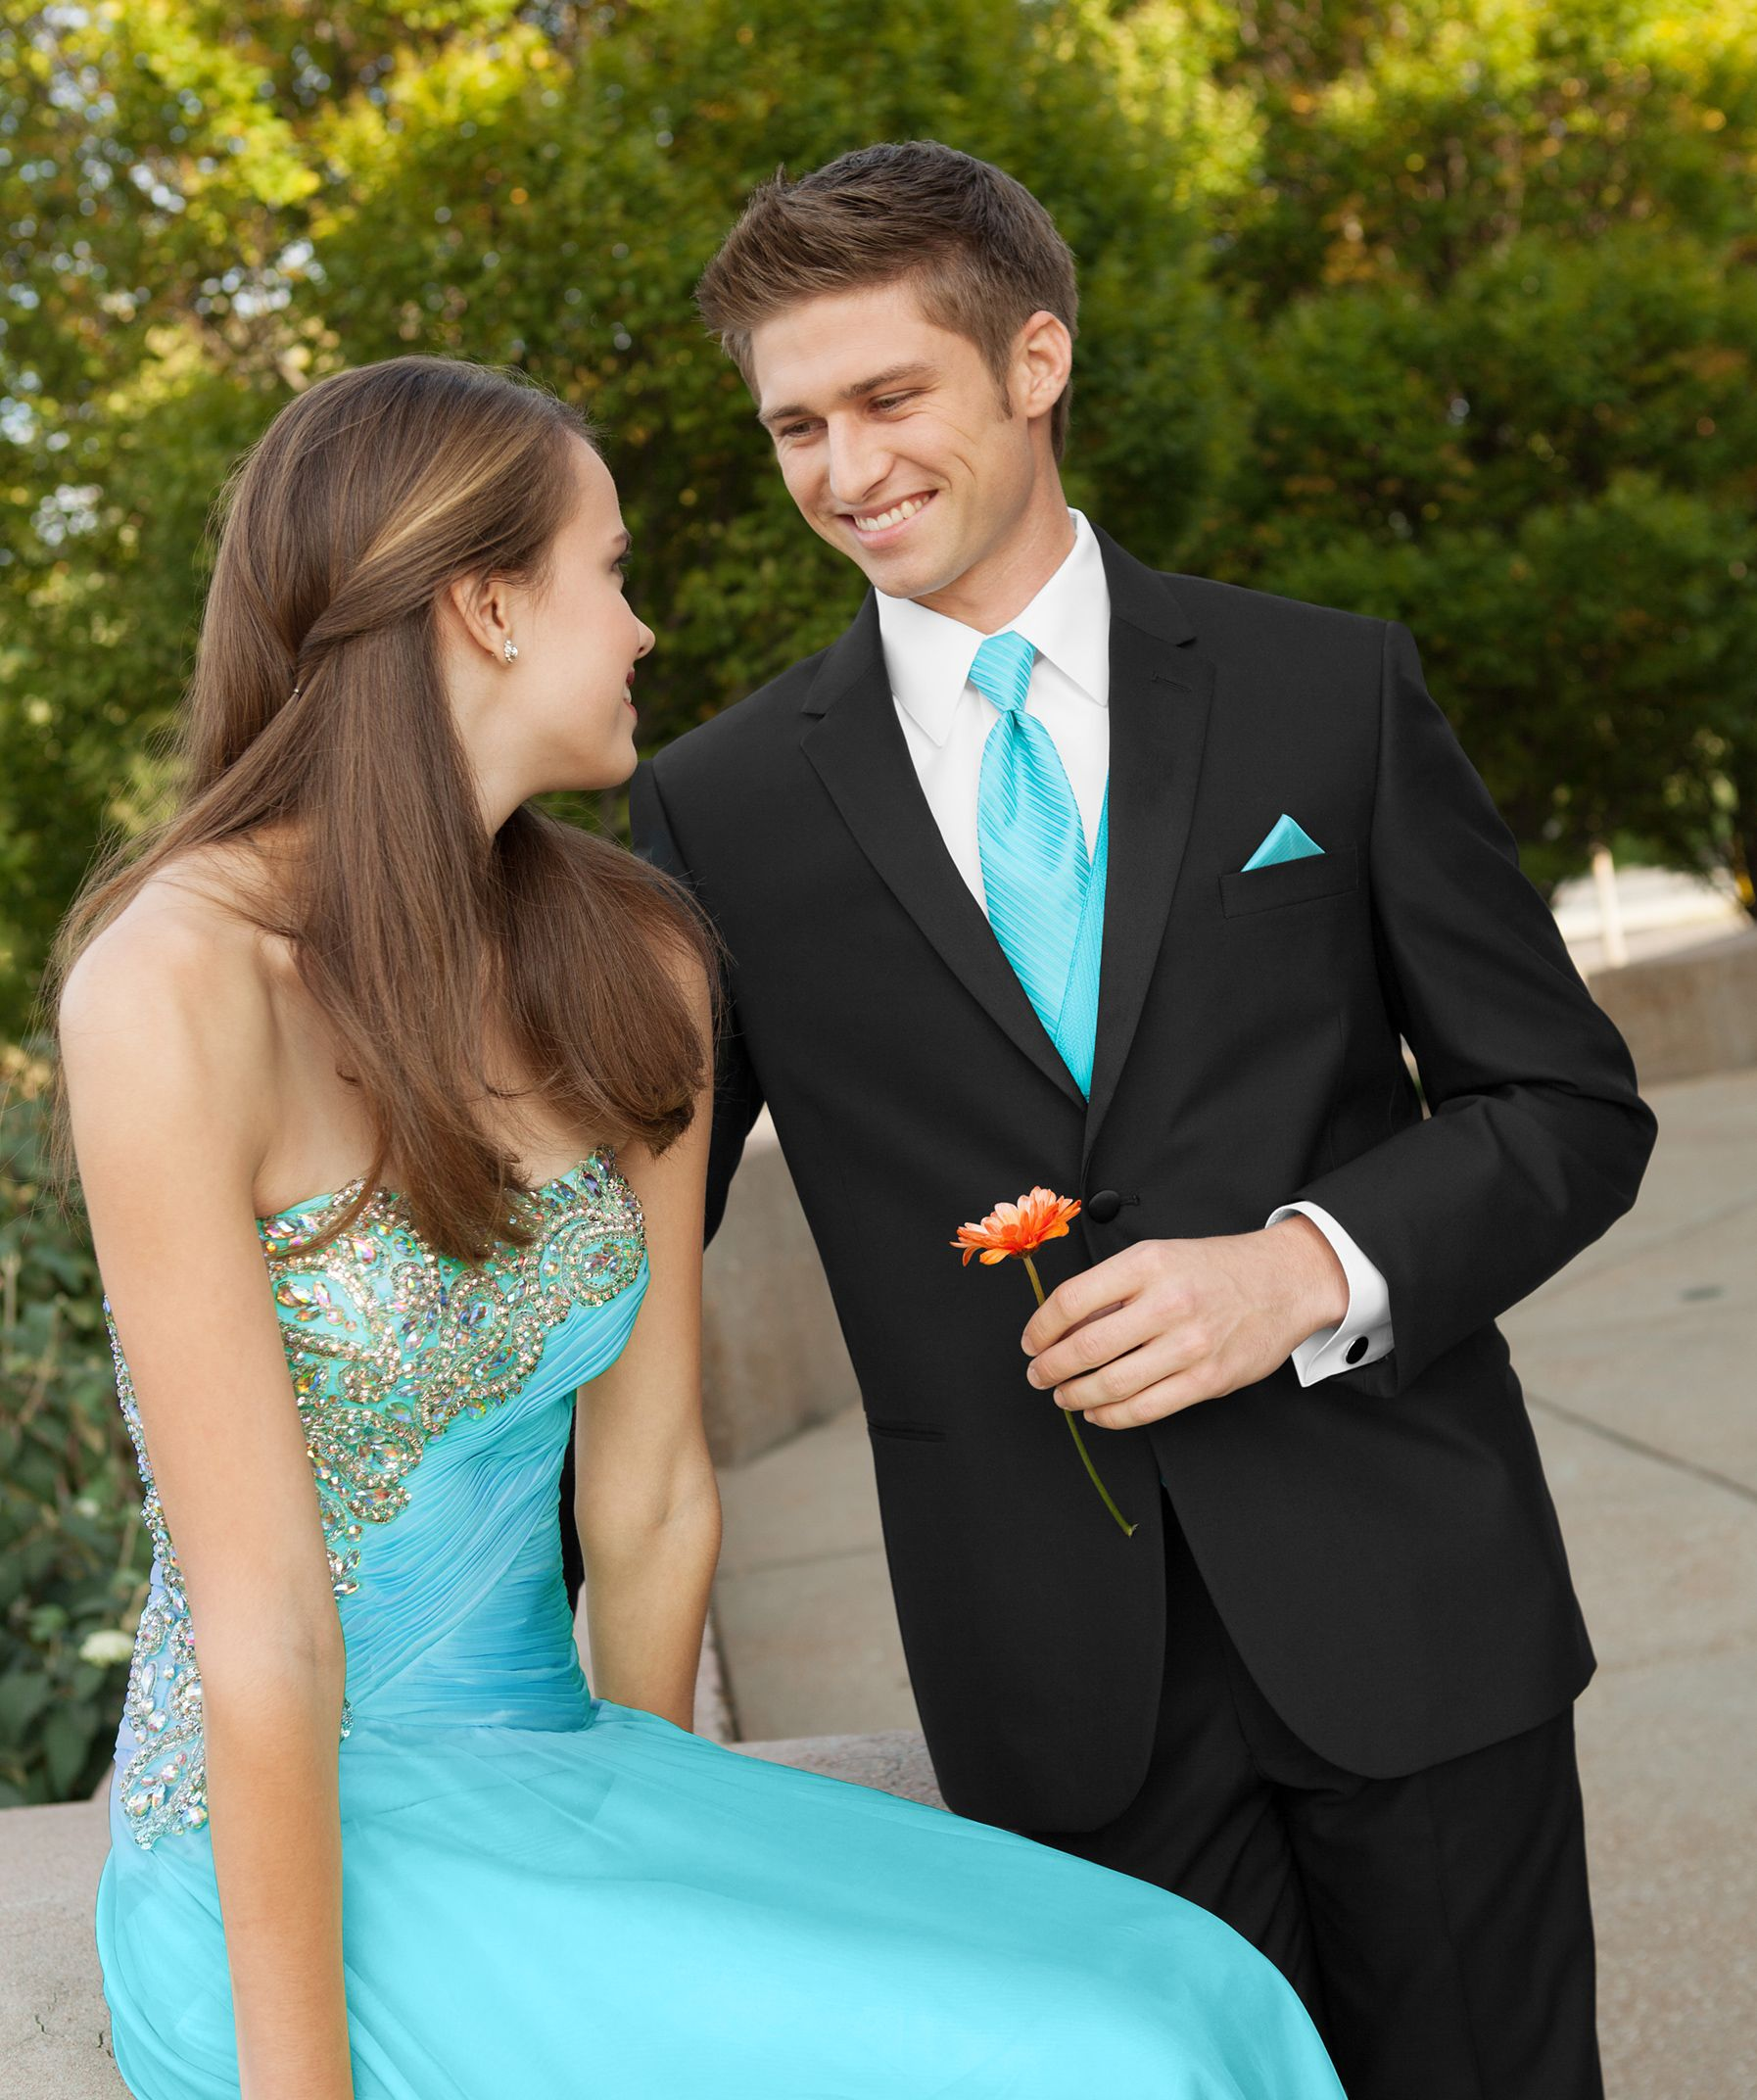 Prom Tuxedo by Jim's Formal Wear | Prom 2015 | Pinterest | Prom ...